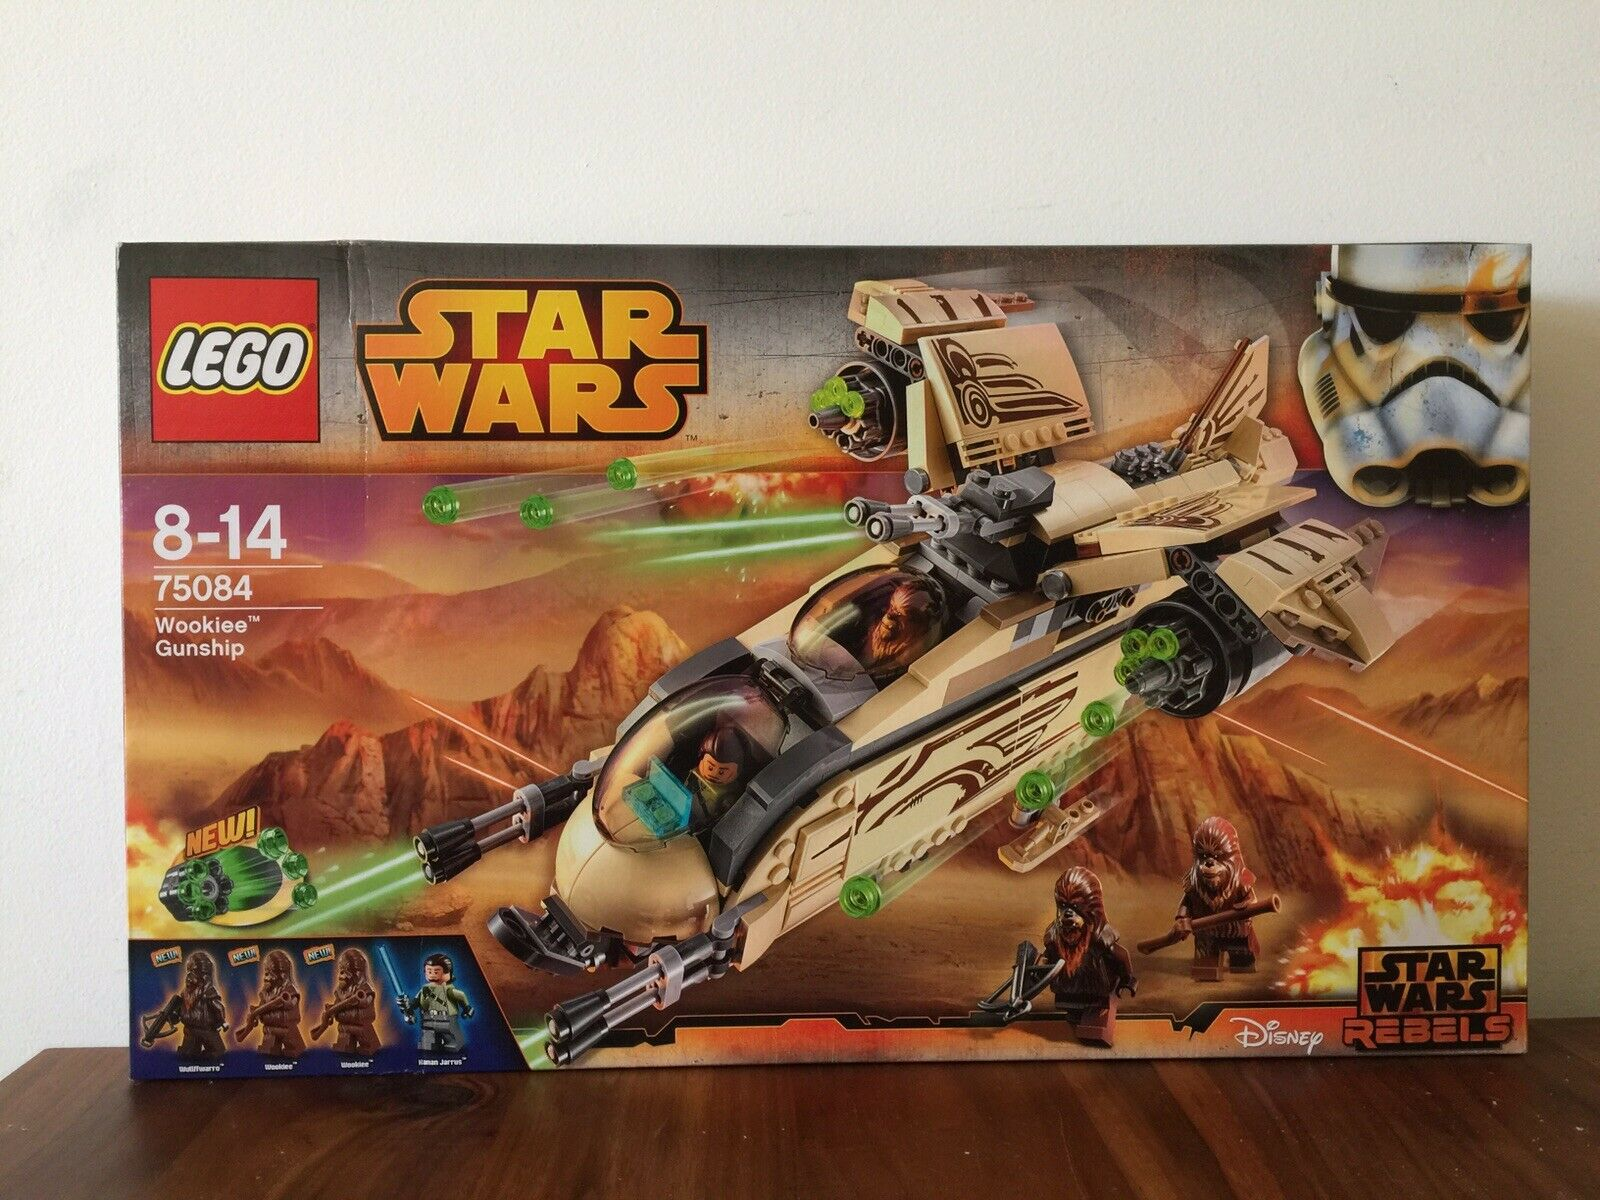 Lego Star Wars Wookiee Gunship 75084 New Unopened Recommended Age 8-14